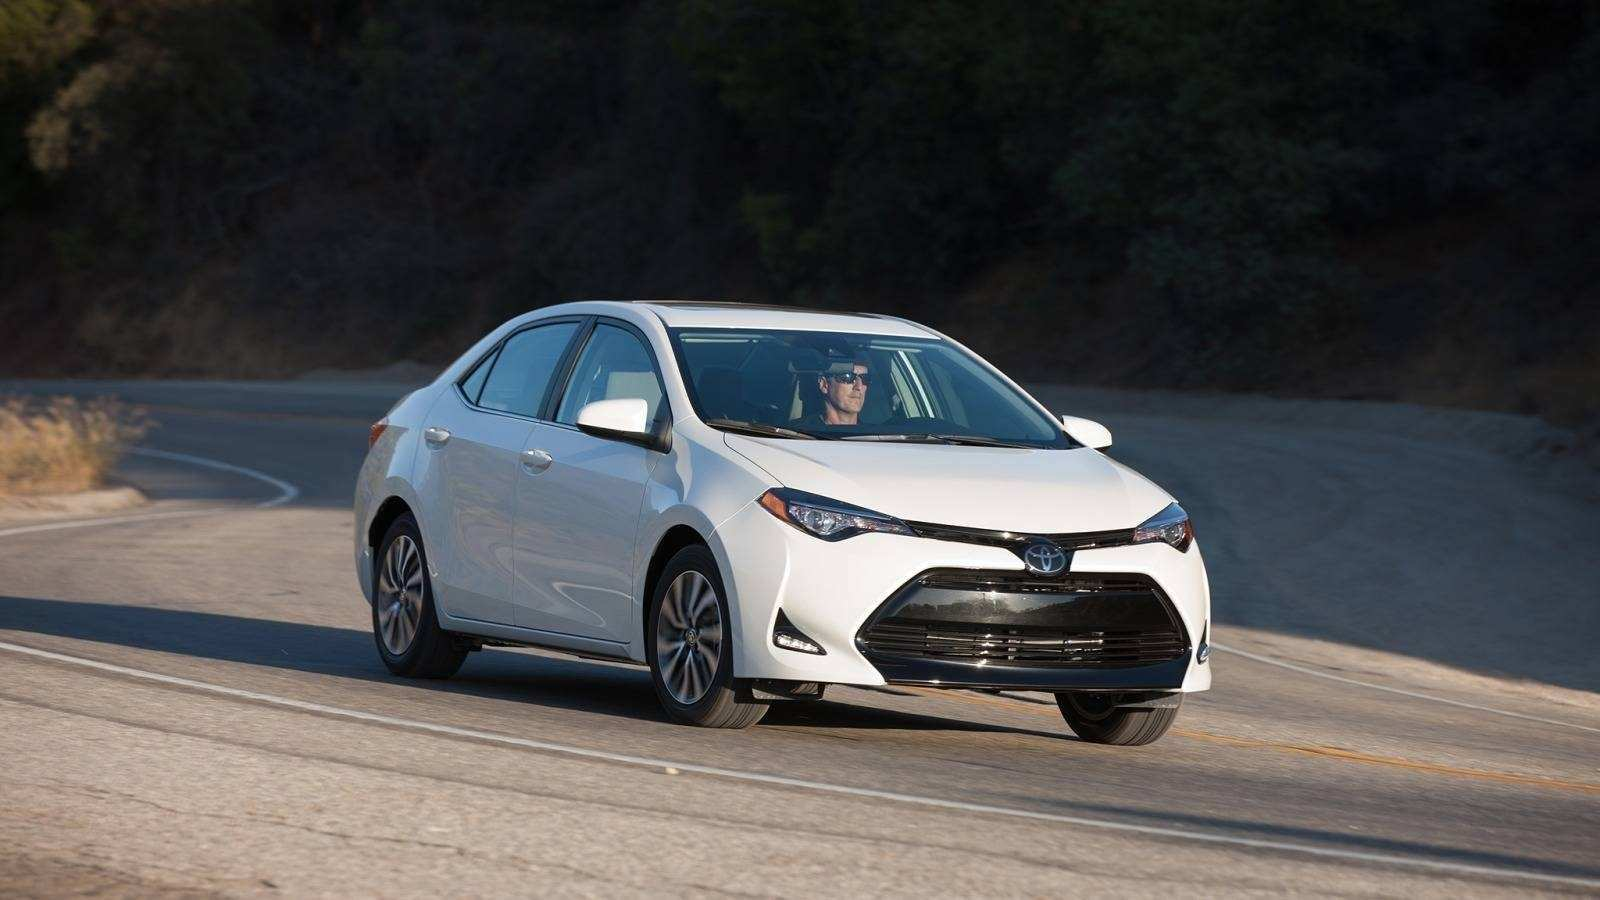 91 New New Sedan Toyota 2019 Overview And Price Concept for New Sedan Toyota 2019 Overview And Price